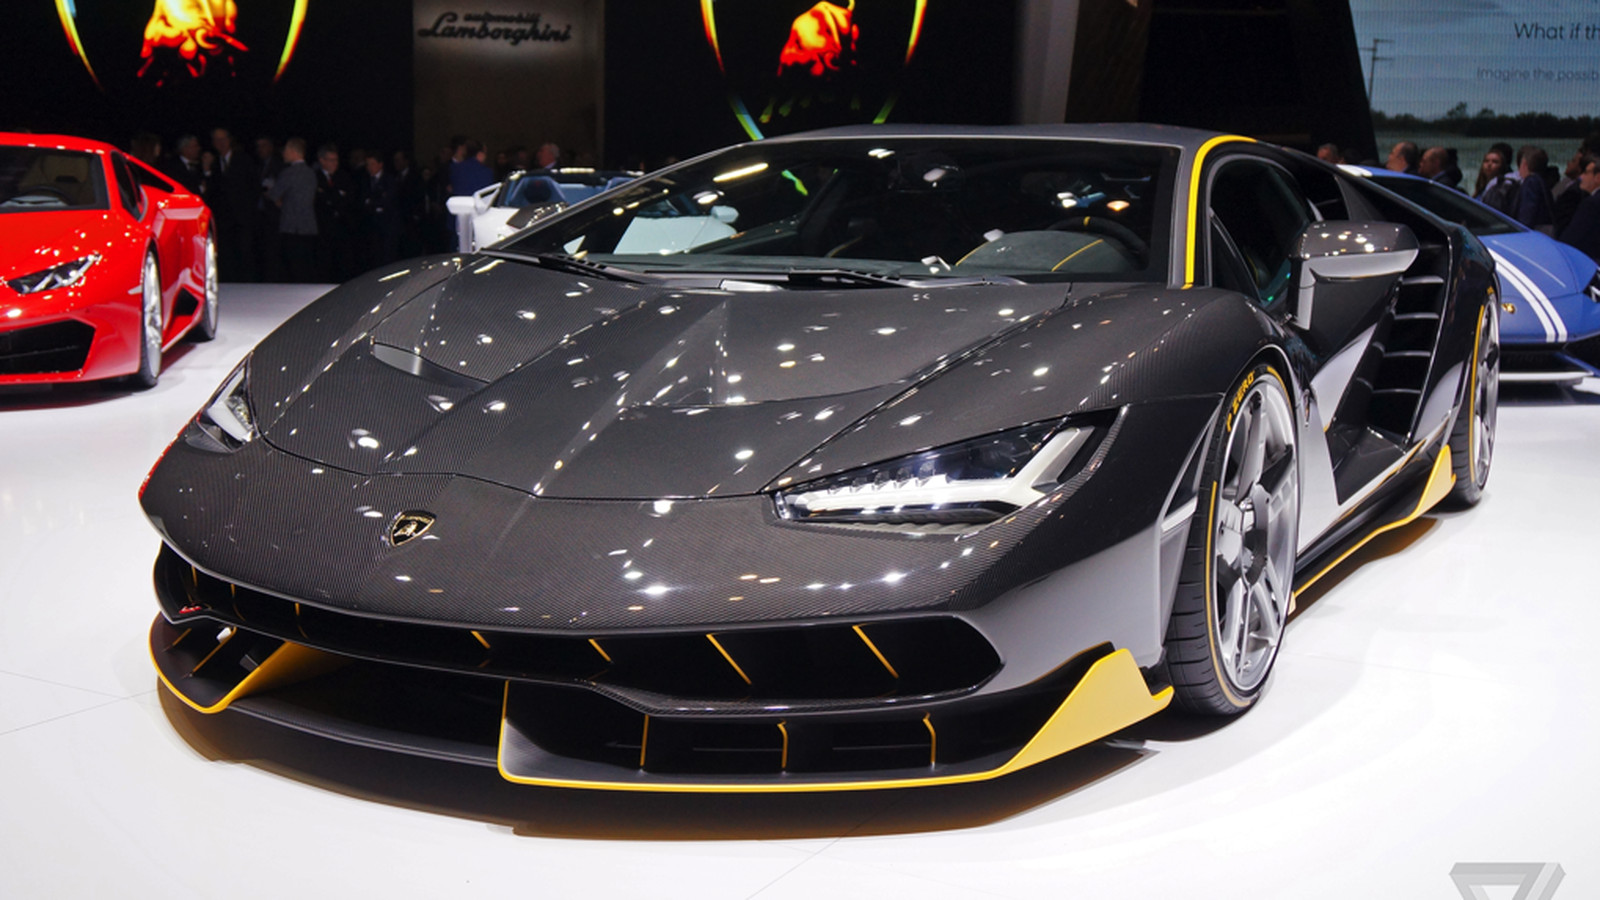 Lamborghini S Centenario Is A Gorgeous Celebration Of An